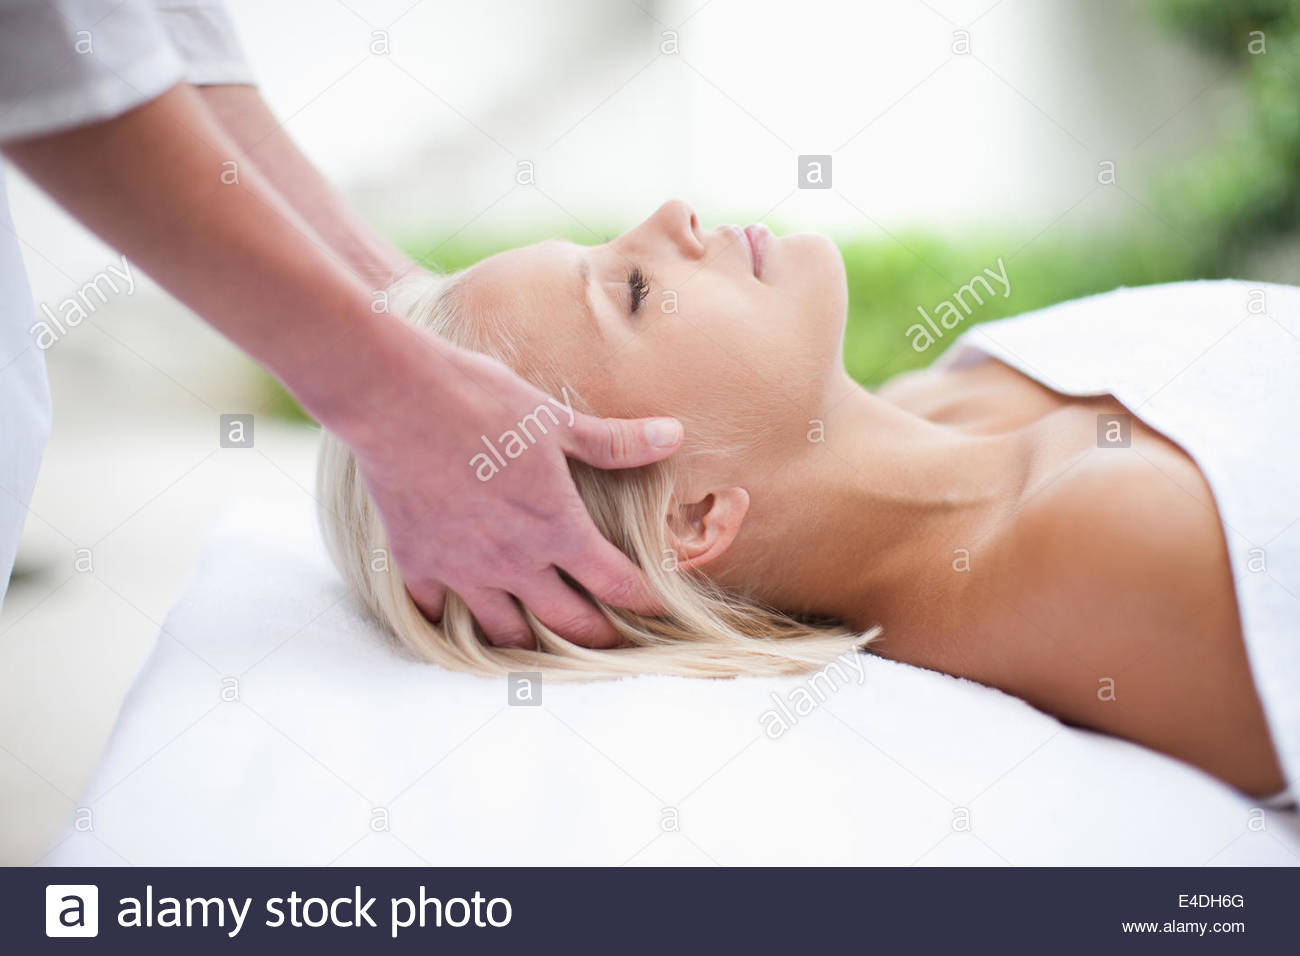 Woman receiving massage - Stock Image